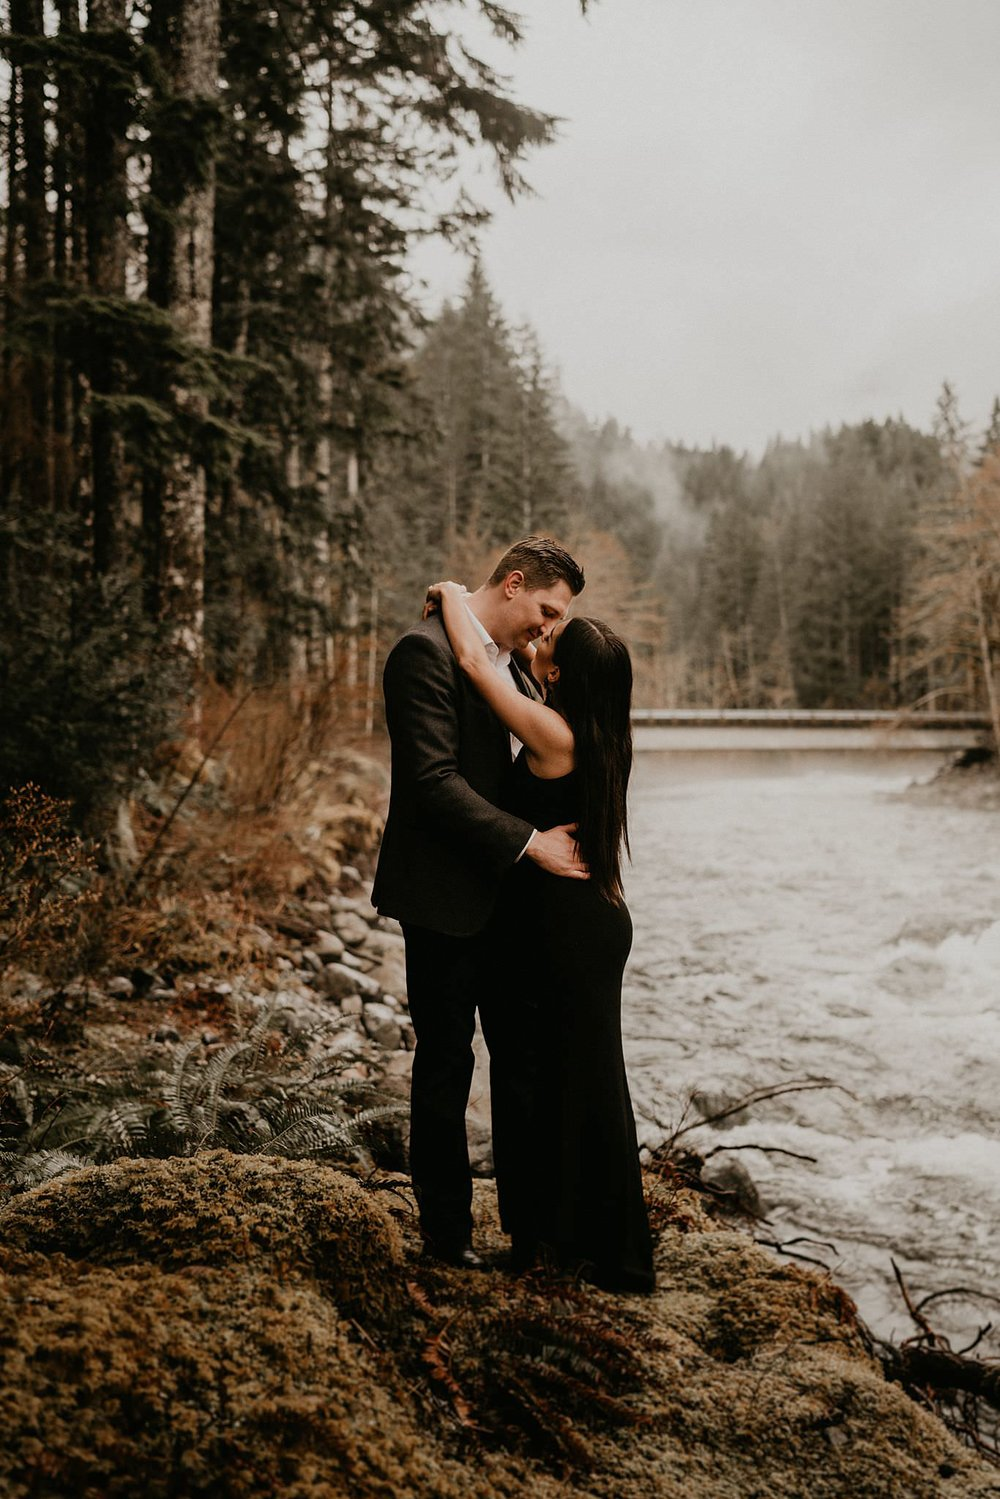 Foggy and moody engagement photo in the Pacific Northwest